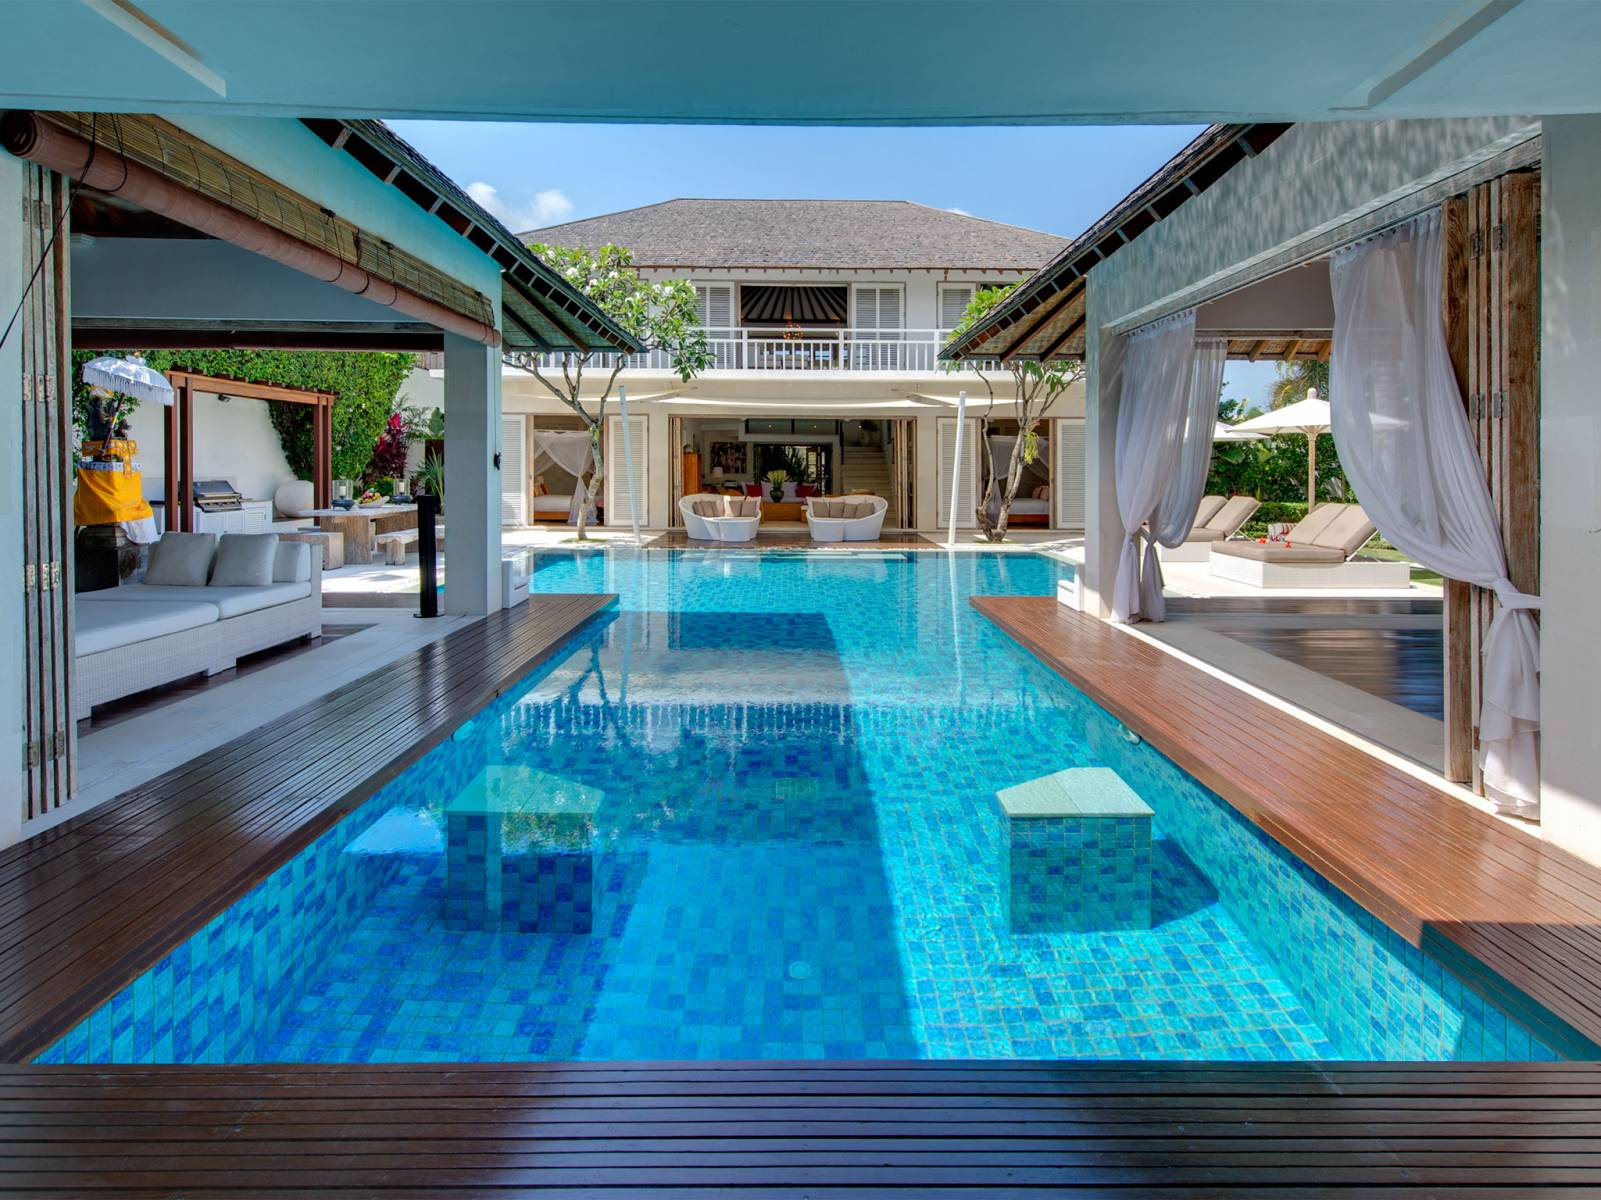 Best luxury bali villas 600 private villas with pool for Pool design for villa